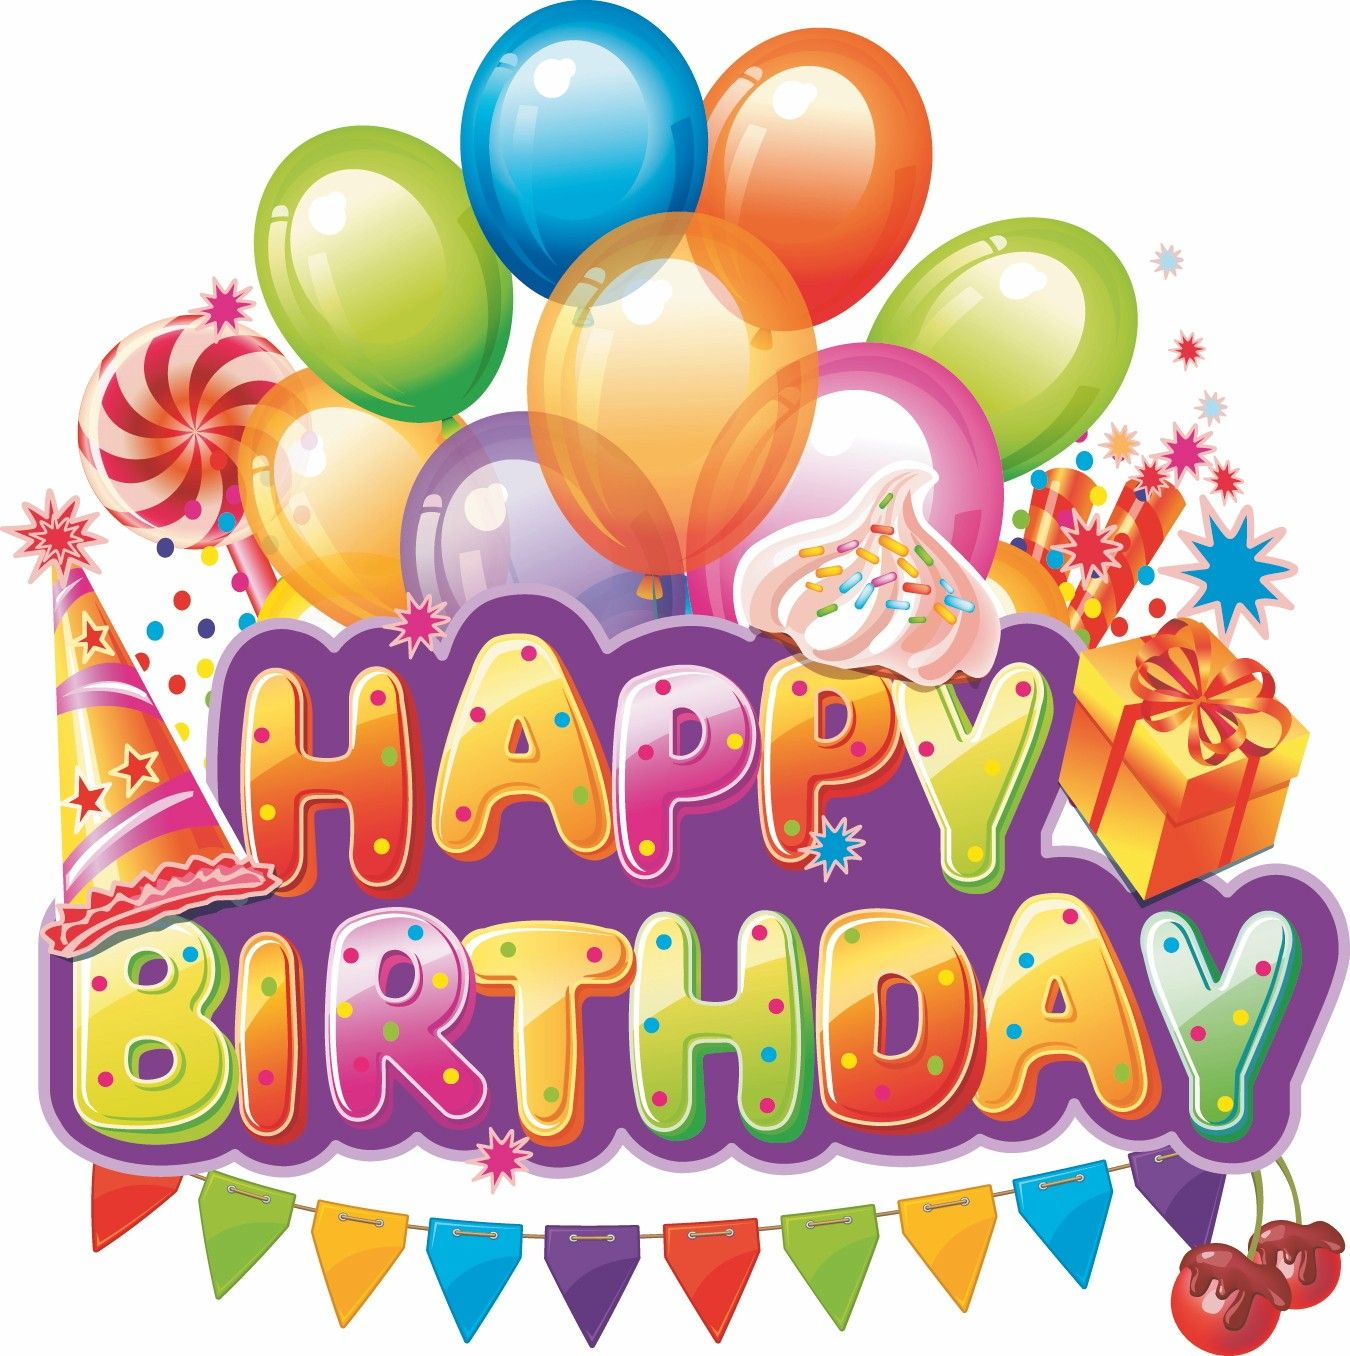 17 Best images about Birthday clip art on Pinterest | Happy, Music ...